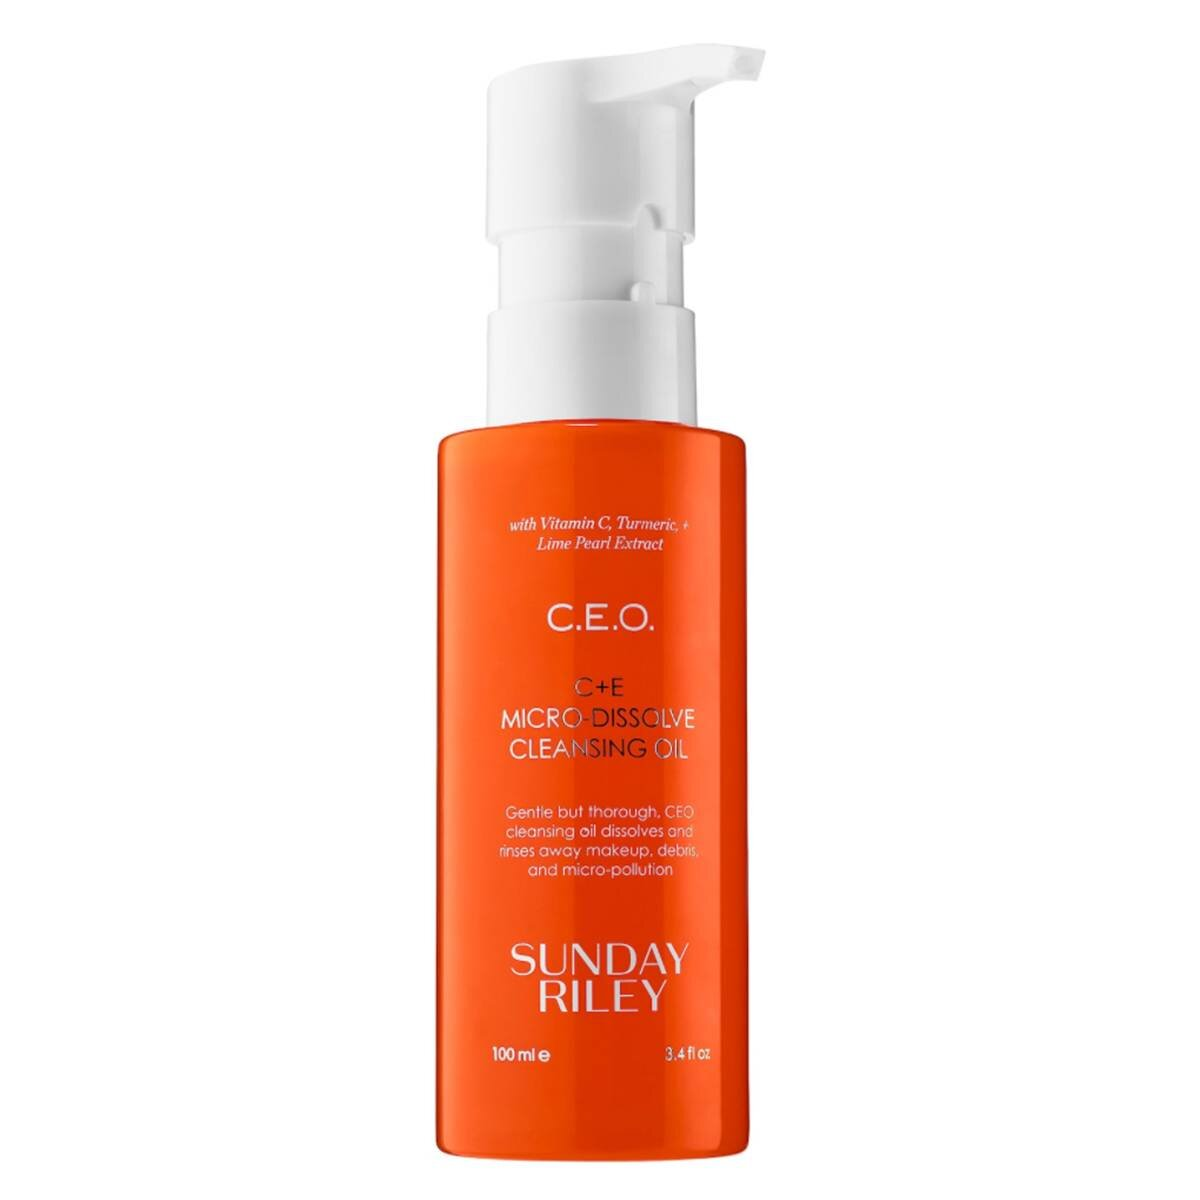 Sunday Riley  C.E.O. Vitamin C + E Cleansing Oil ($38)